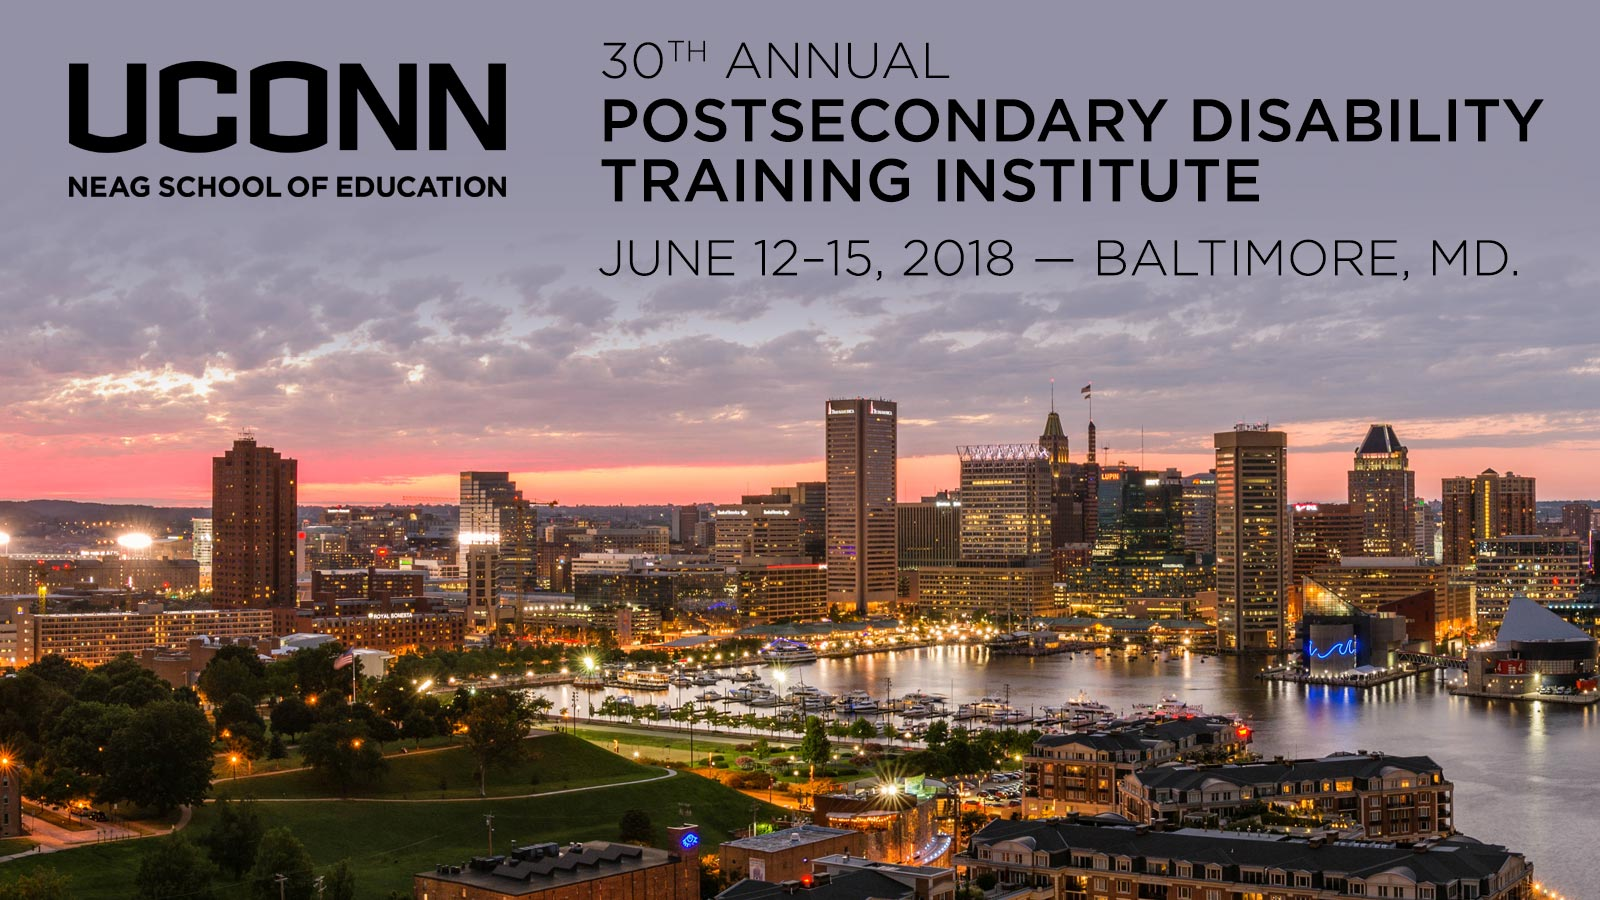 PTI 2018: June 12-15, 2018 in Baltimore, Maryland